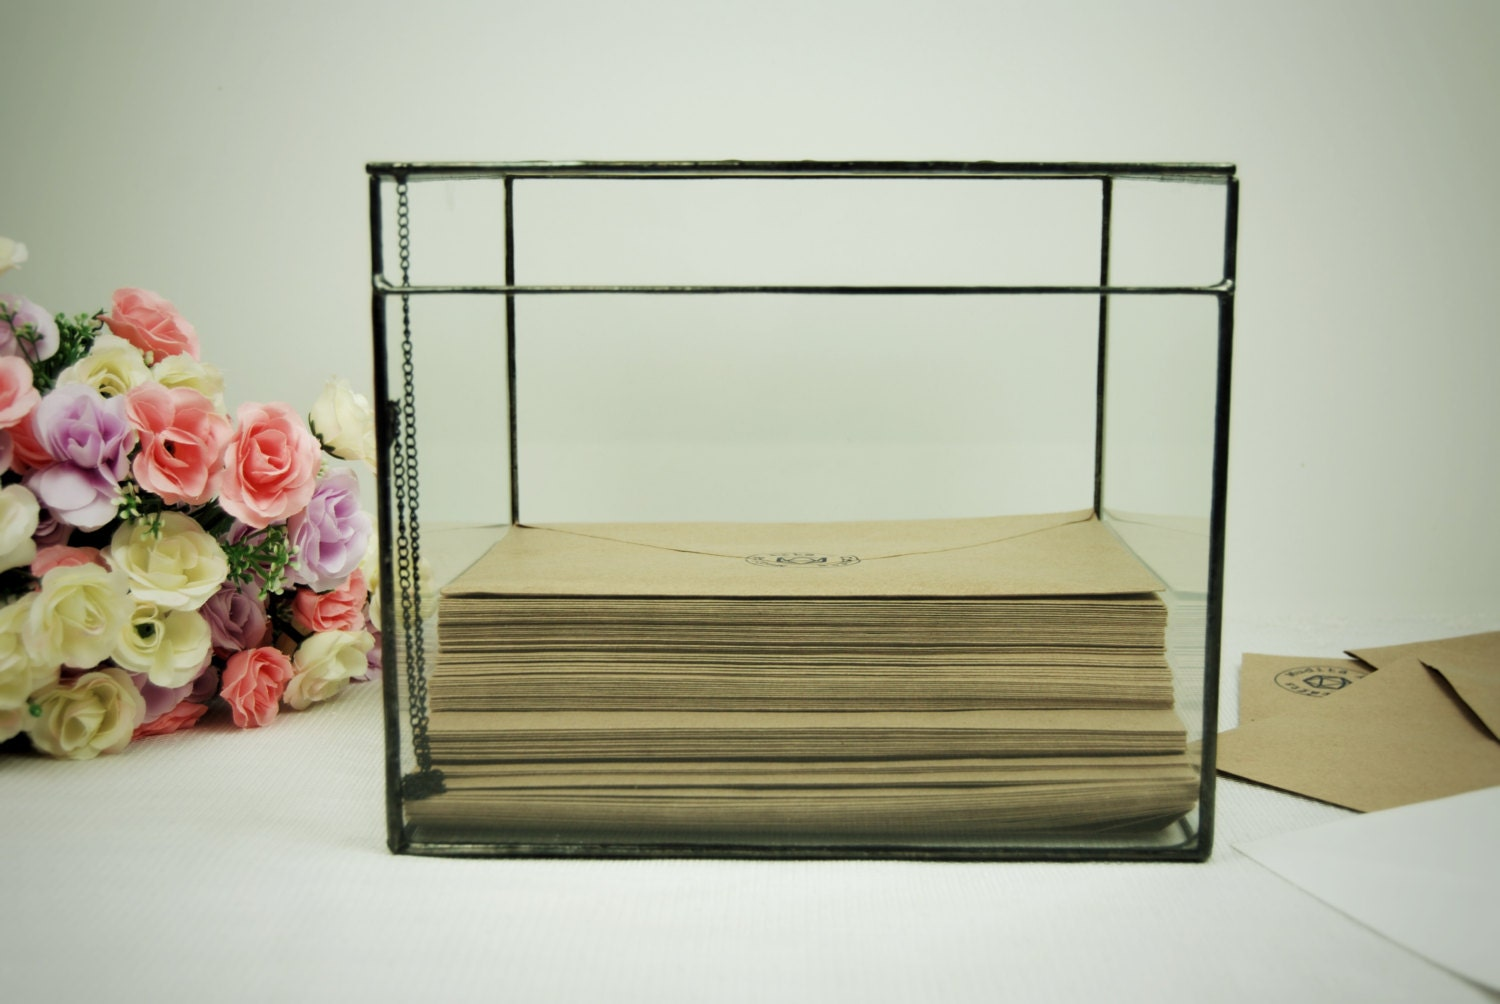 Wedding Keepsake Box Wedding Card Box Wedding Card Holder – Large Wedding Card Box